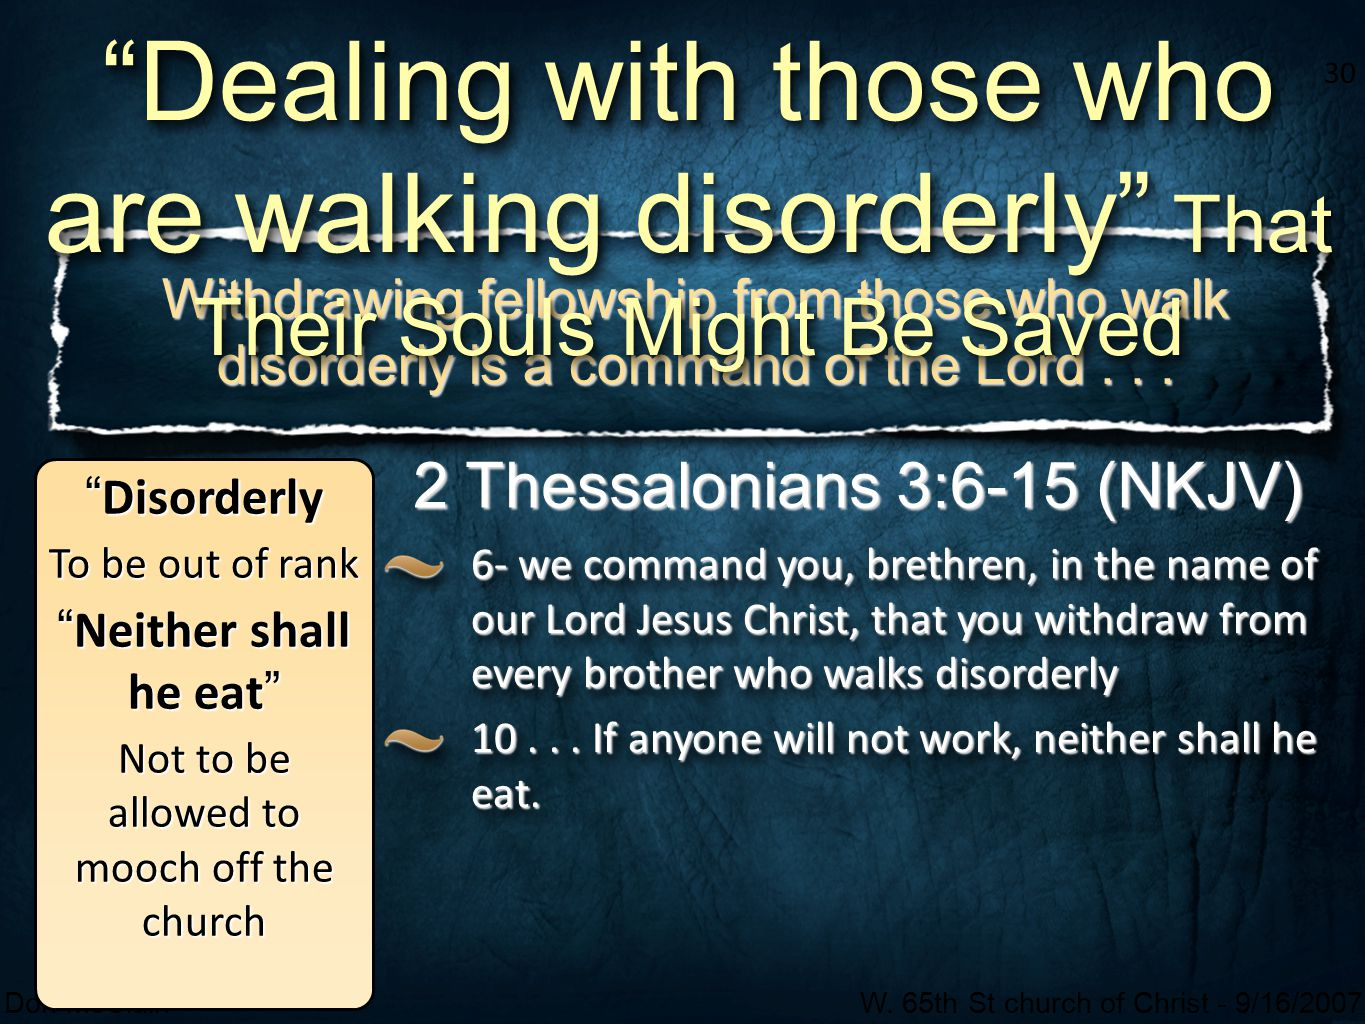 30 Don McClainW. 65th St church of Christ - 9/16/2007 30 Withdrawing fellowship from those who walk disorderly is a command of the Lord... 6- we comma